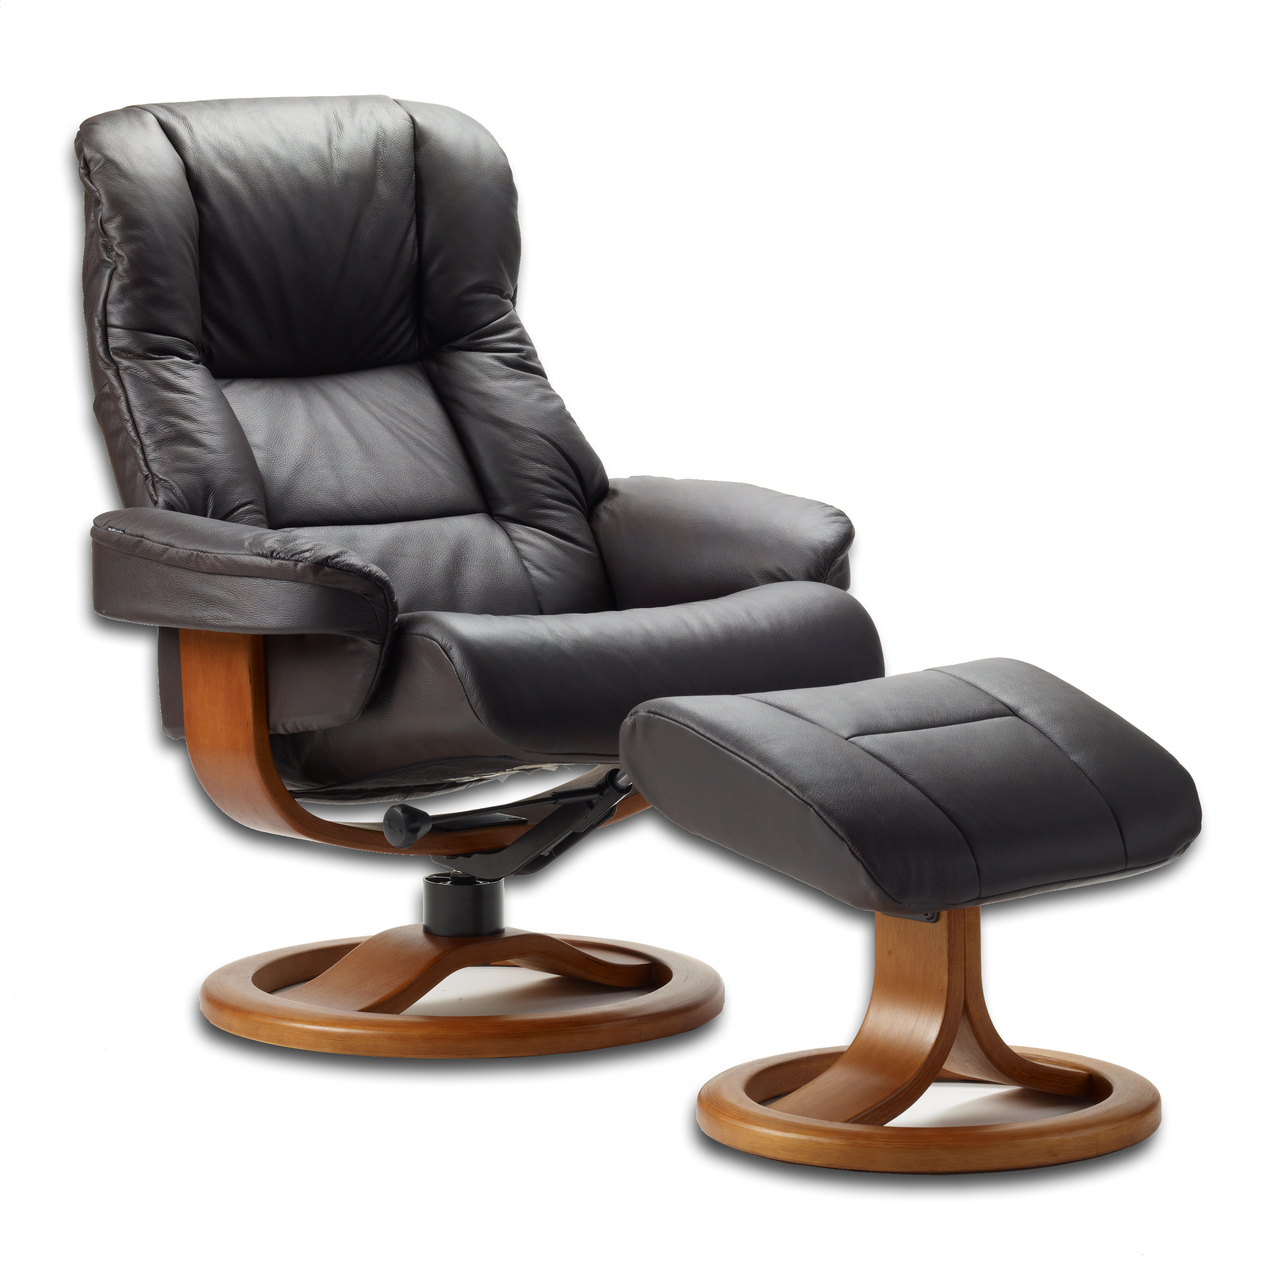 ergonomic chair and ottoman pedicure no plumbing fjords oslo swing relaxer zero gravity recliner nl130